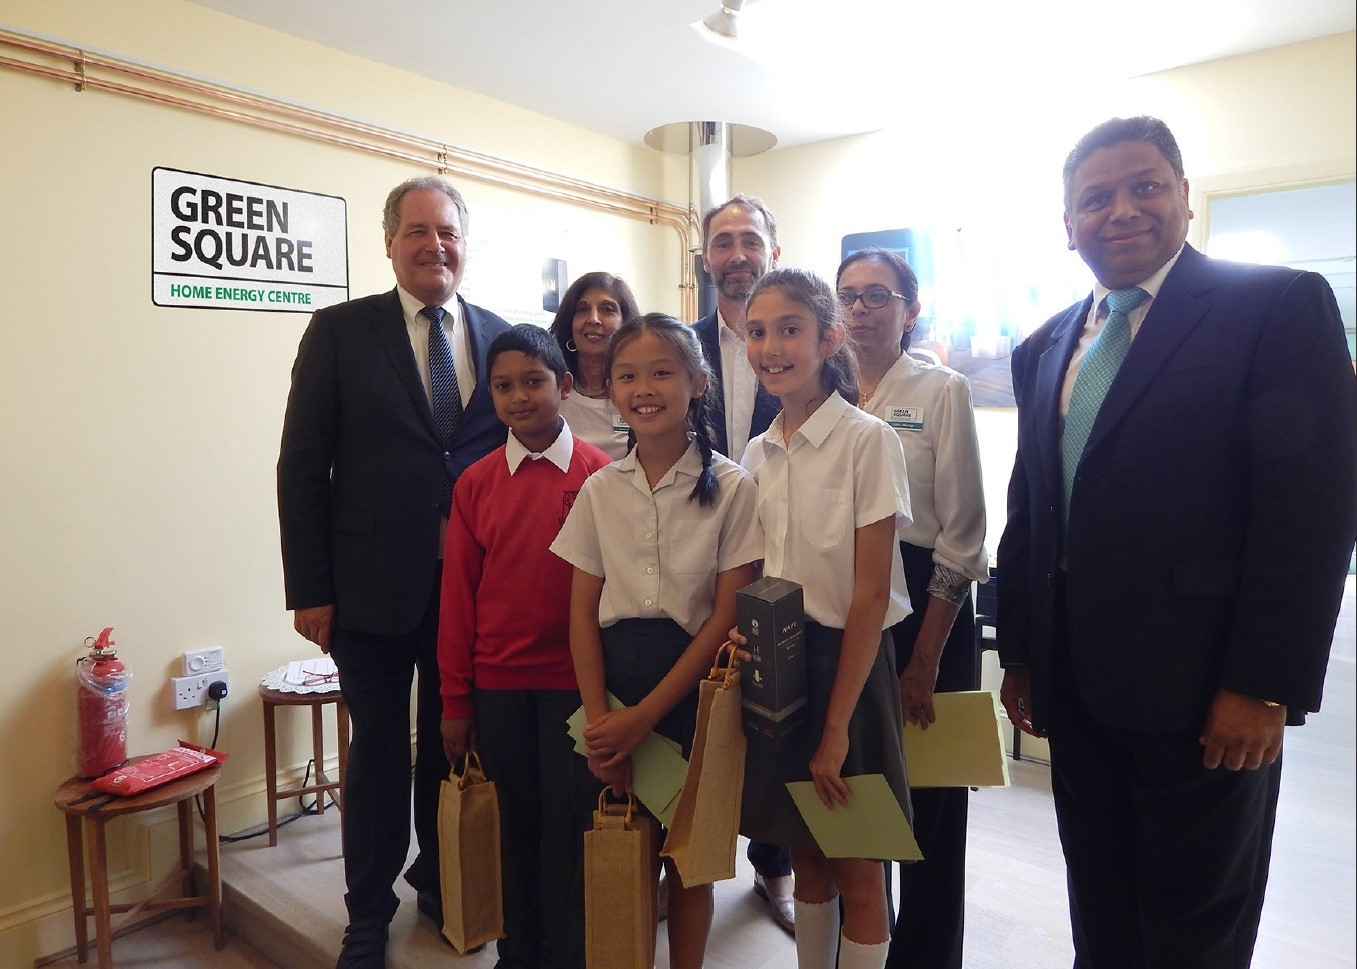 Bob Blackman MP (standing far left) and Cllr Ajay Maru (standing far right) join pupils from Grimsdyke School, Pinner, at a Green Square showroom opening in Hatch End